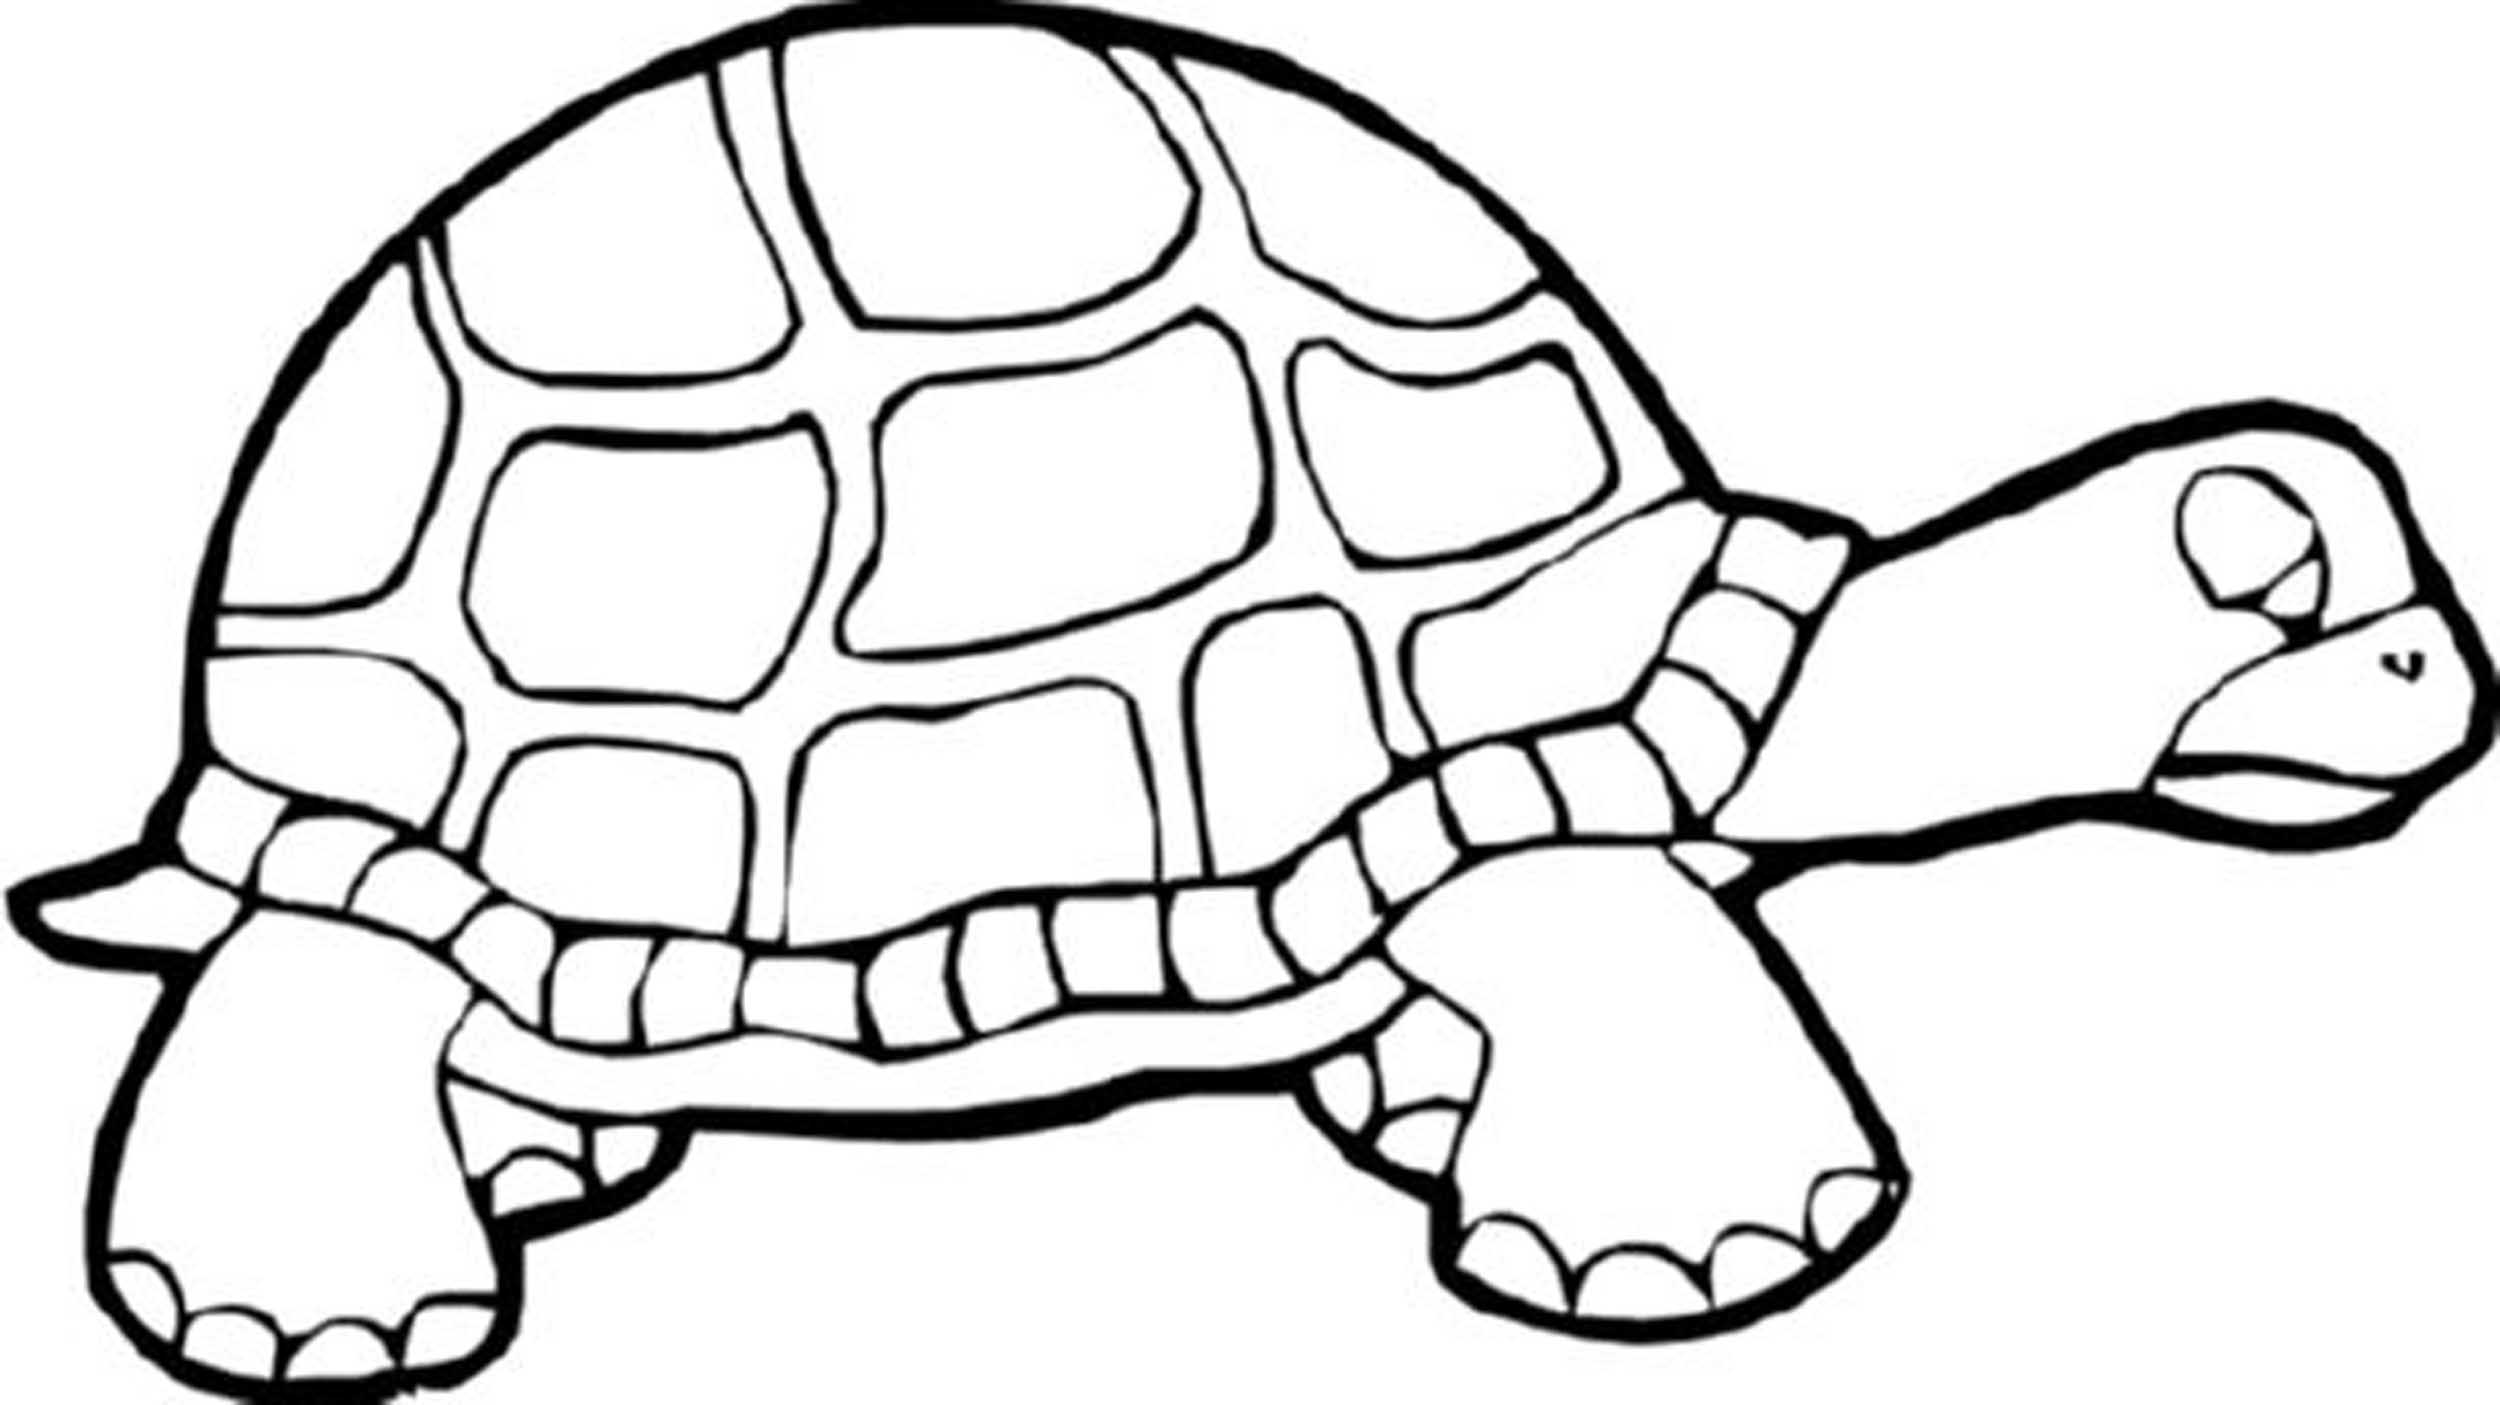 2500x1405 ninja turtles coloring page affordable activities nick random